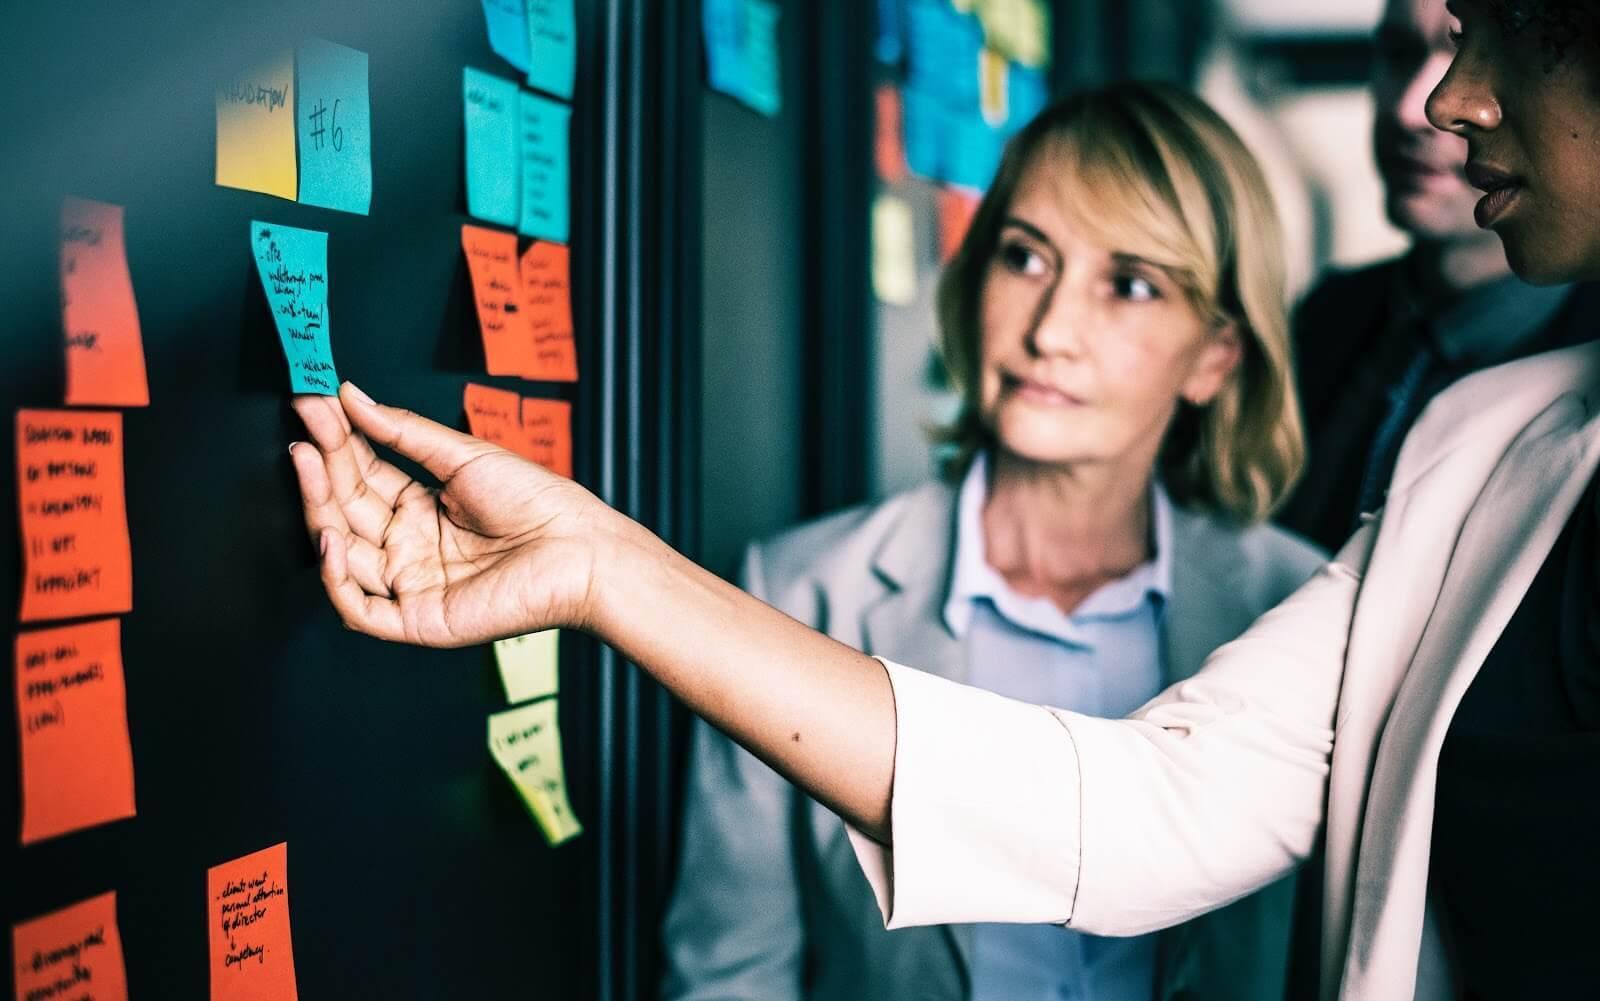 Older woman looks at younger colleague holding Post-It note